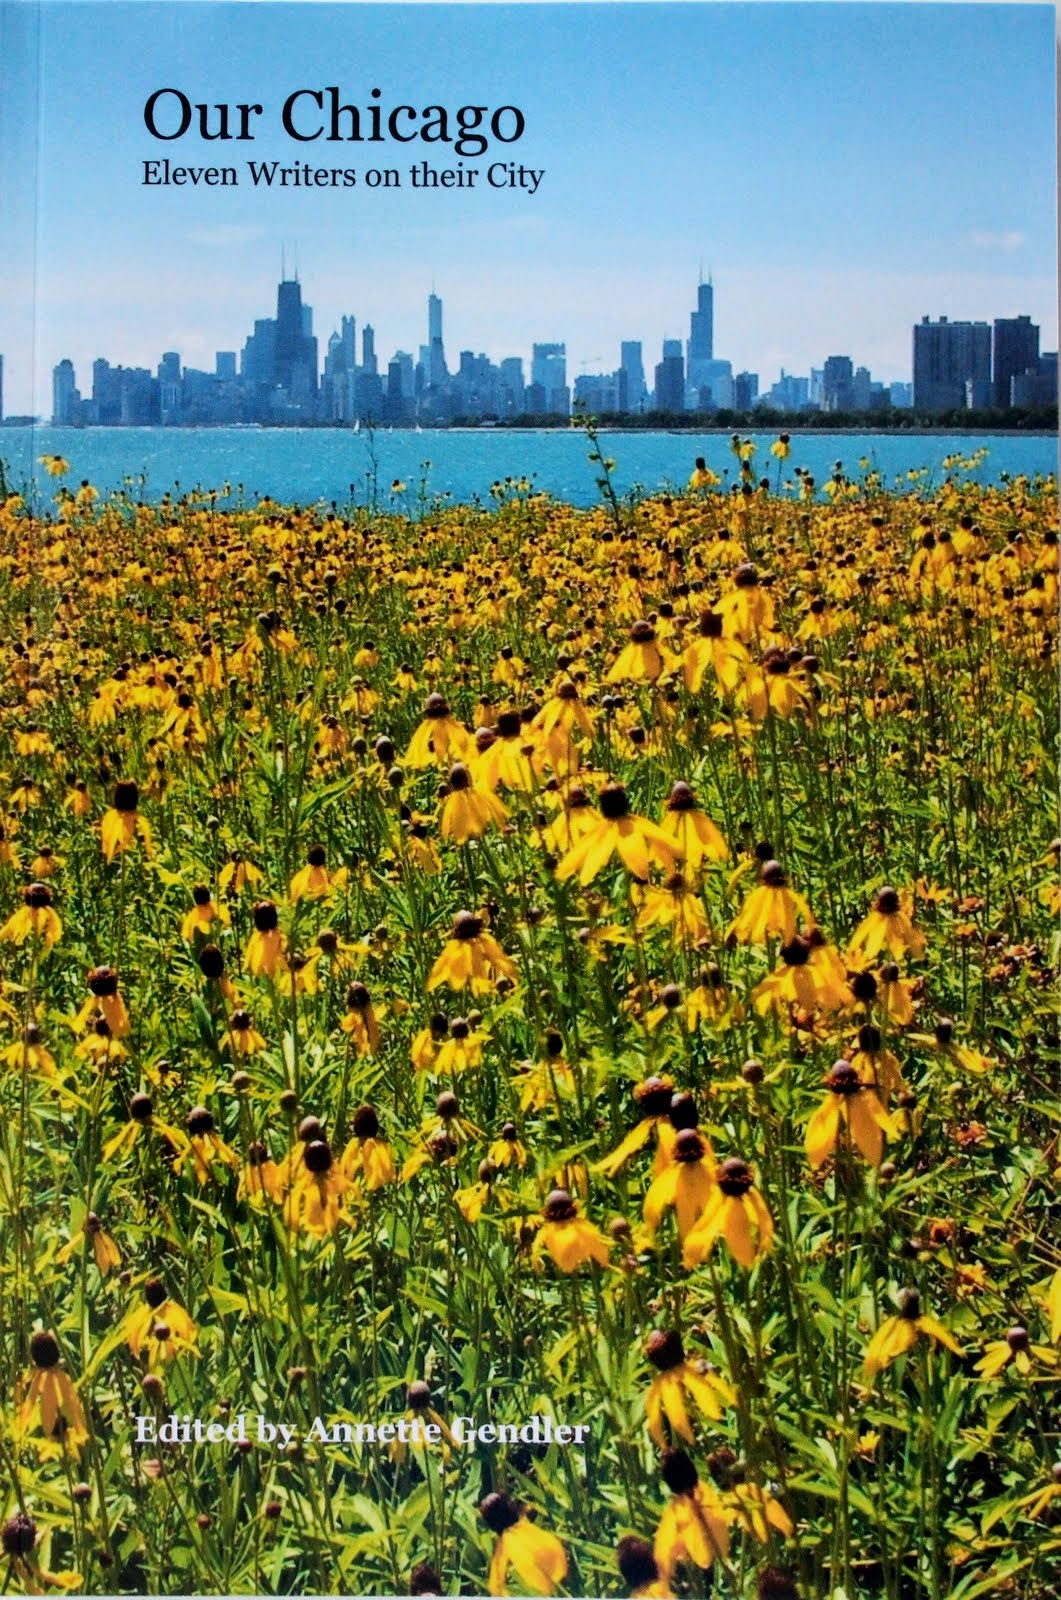 Gorgeous photography and short essays on Chicago - great gift for Chicago lovers and visitors!